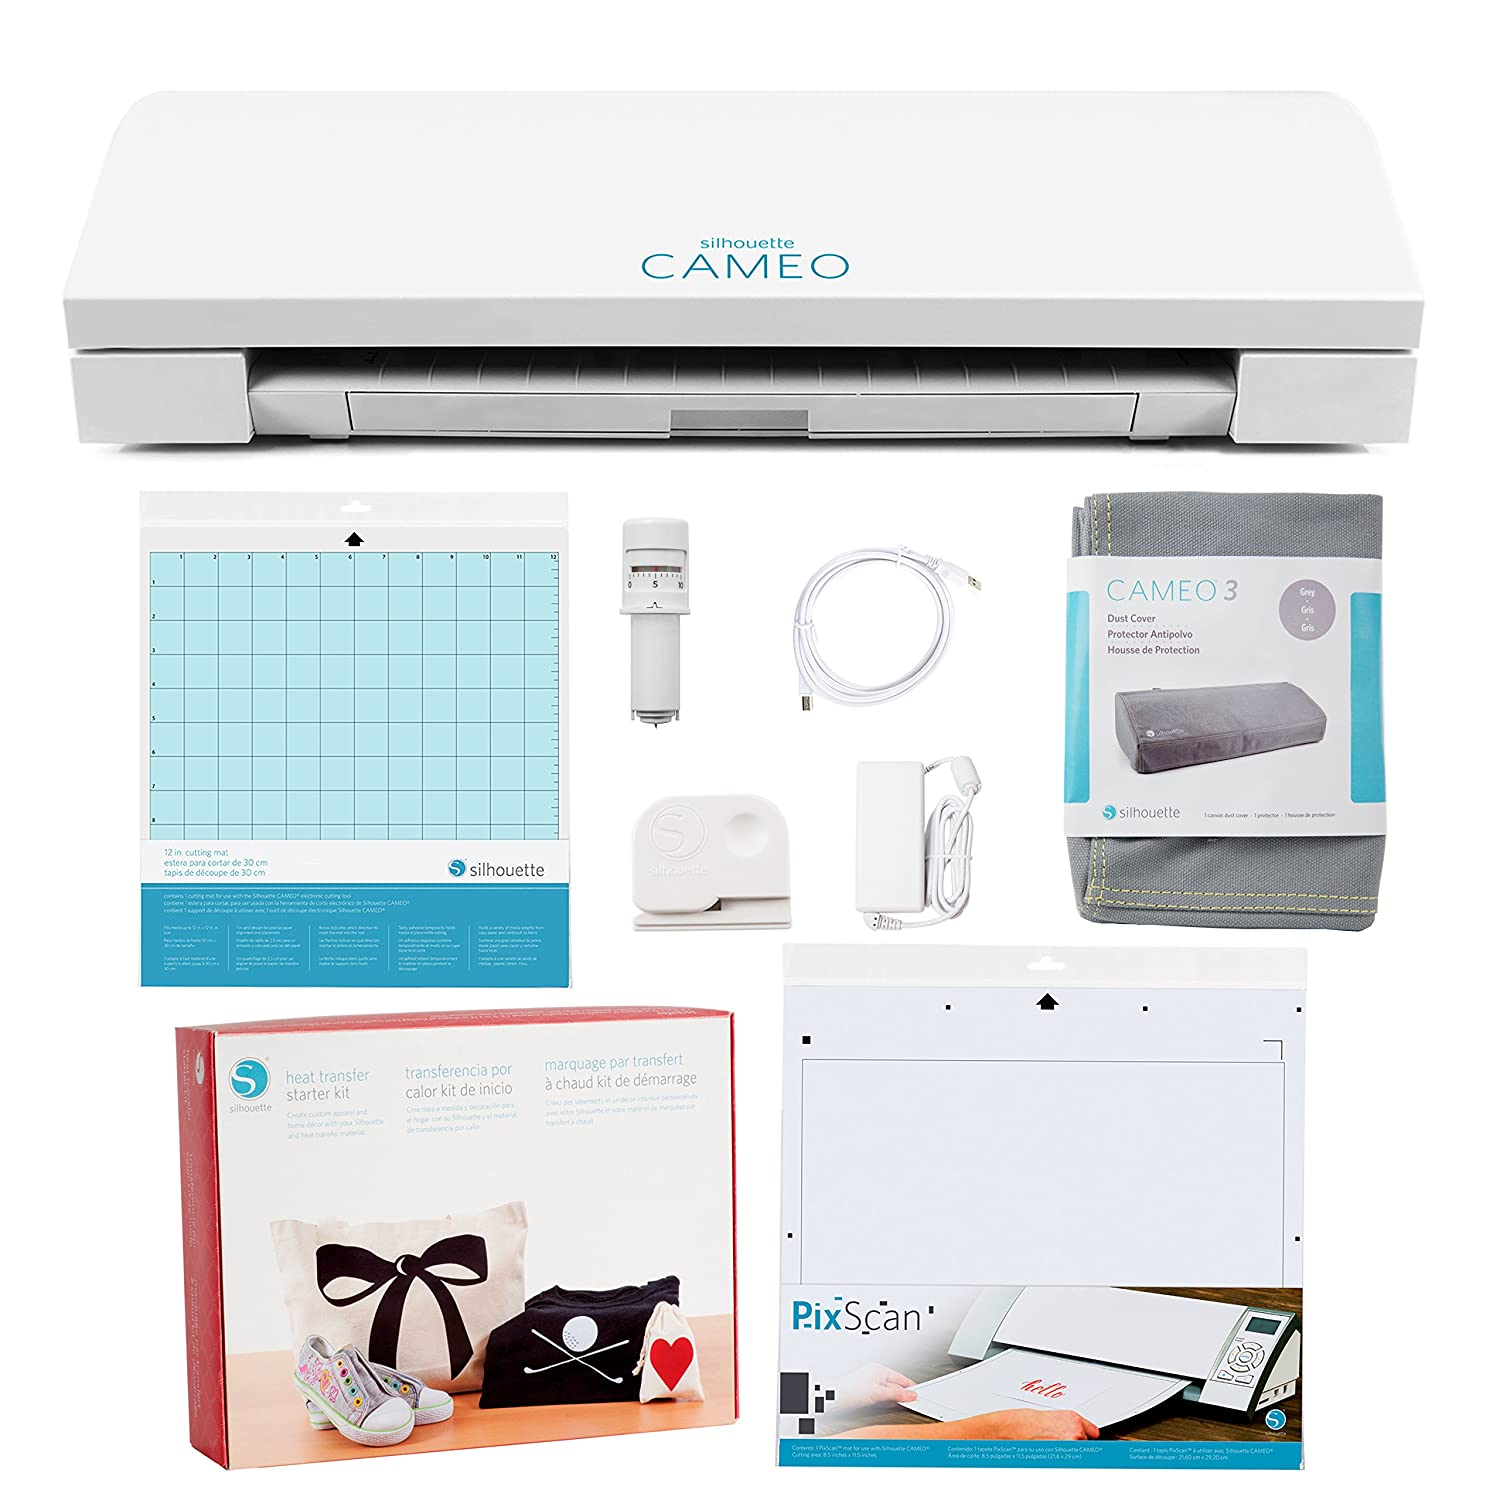 Silhouette Cameo3 Amzn4 Cameo 3 Heat Transfer Sewing Notion Bundle